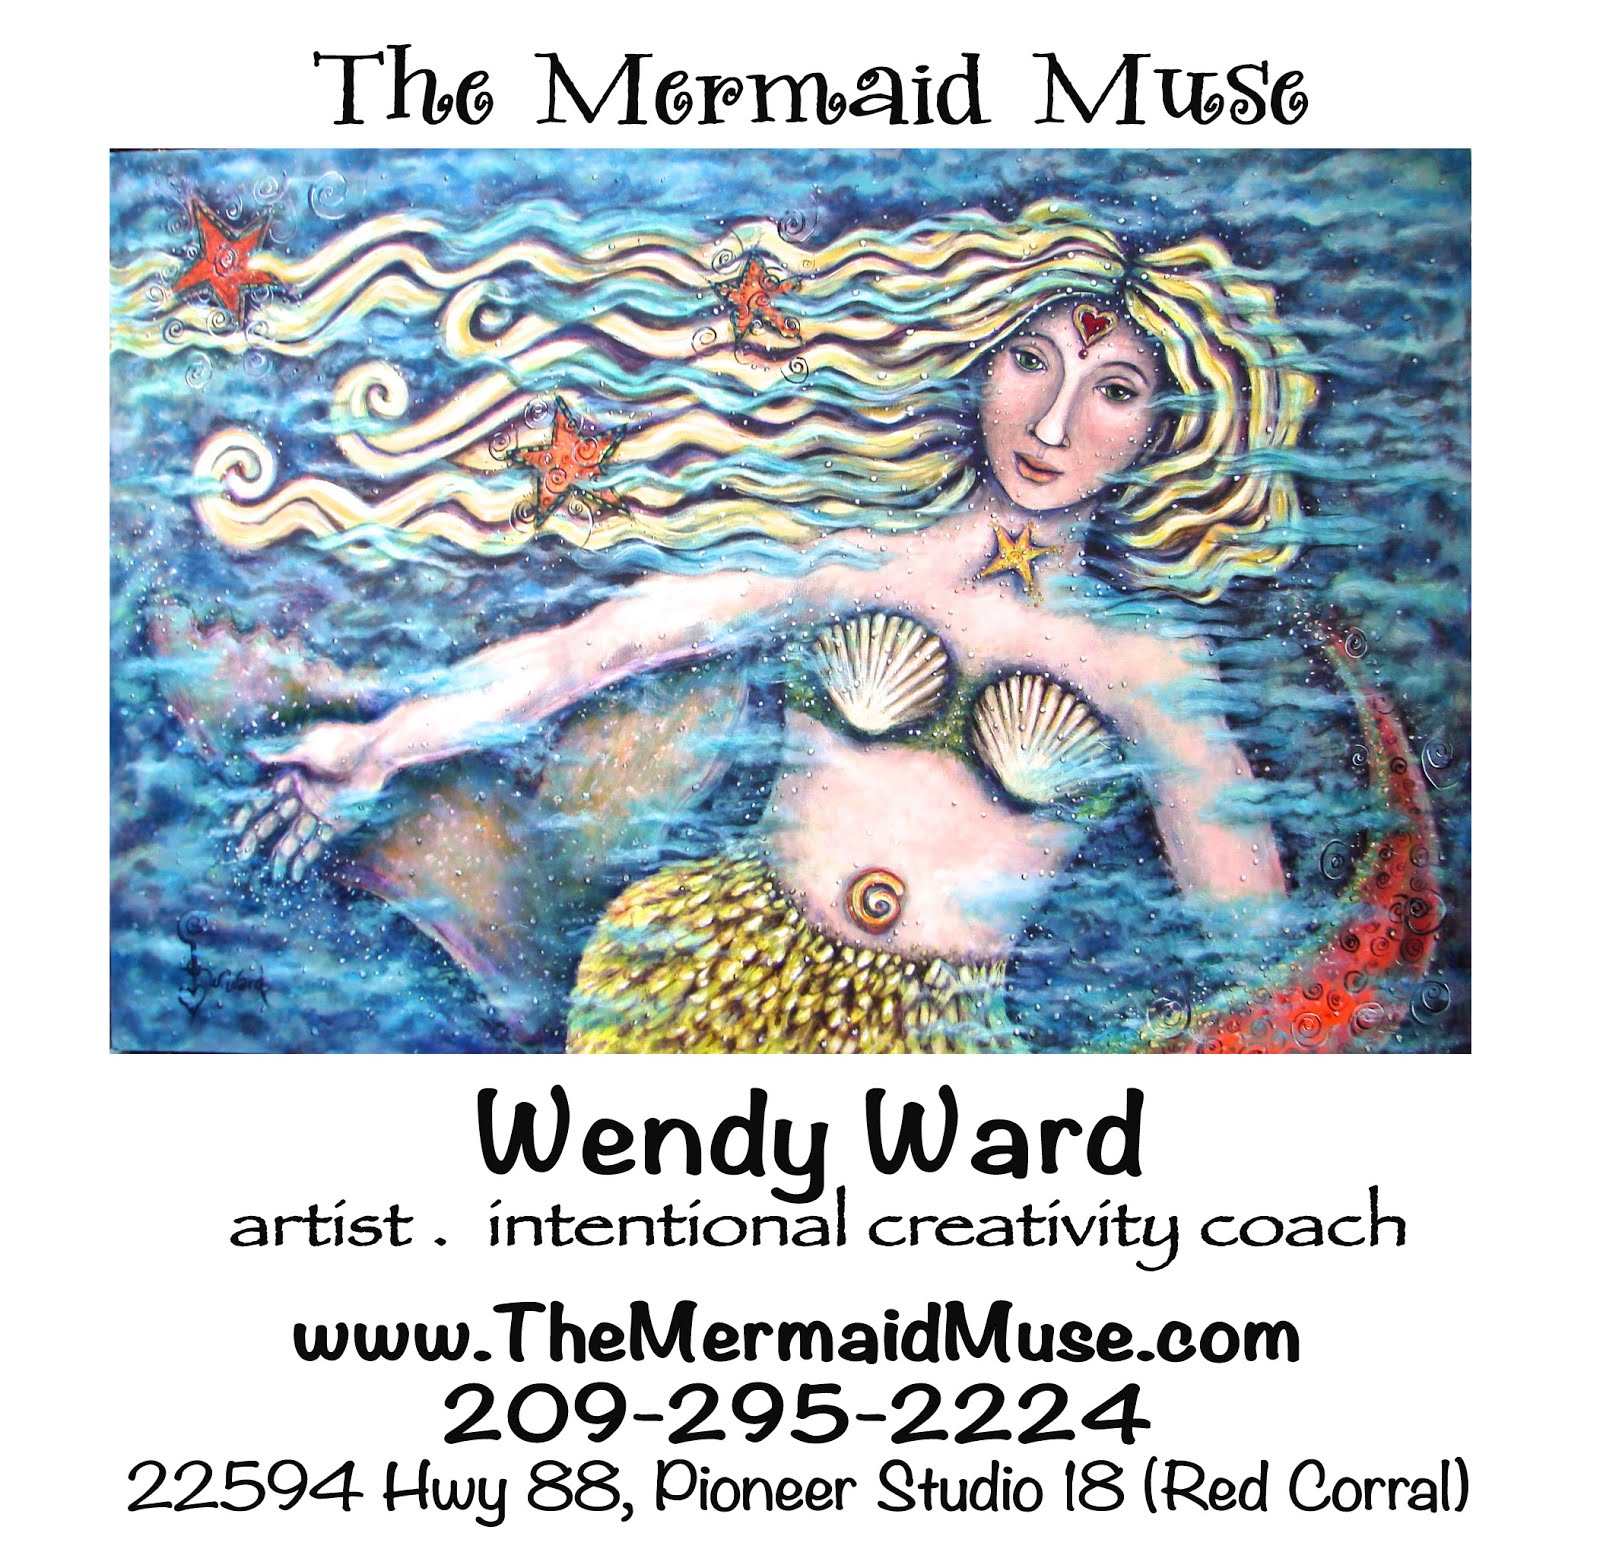 The Mermaid Muse - Wendy Ward